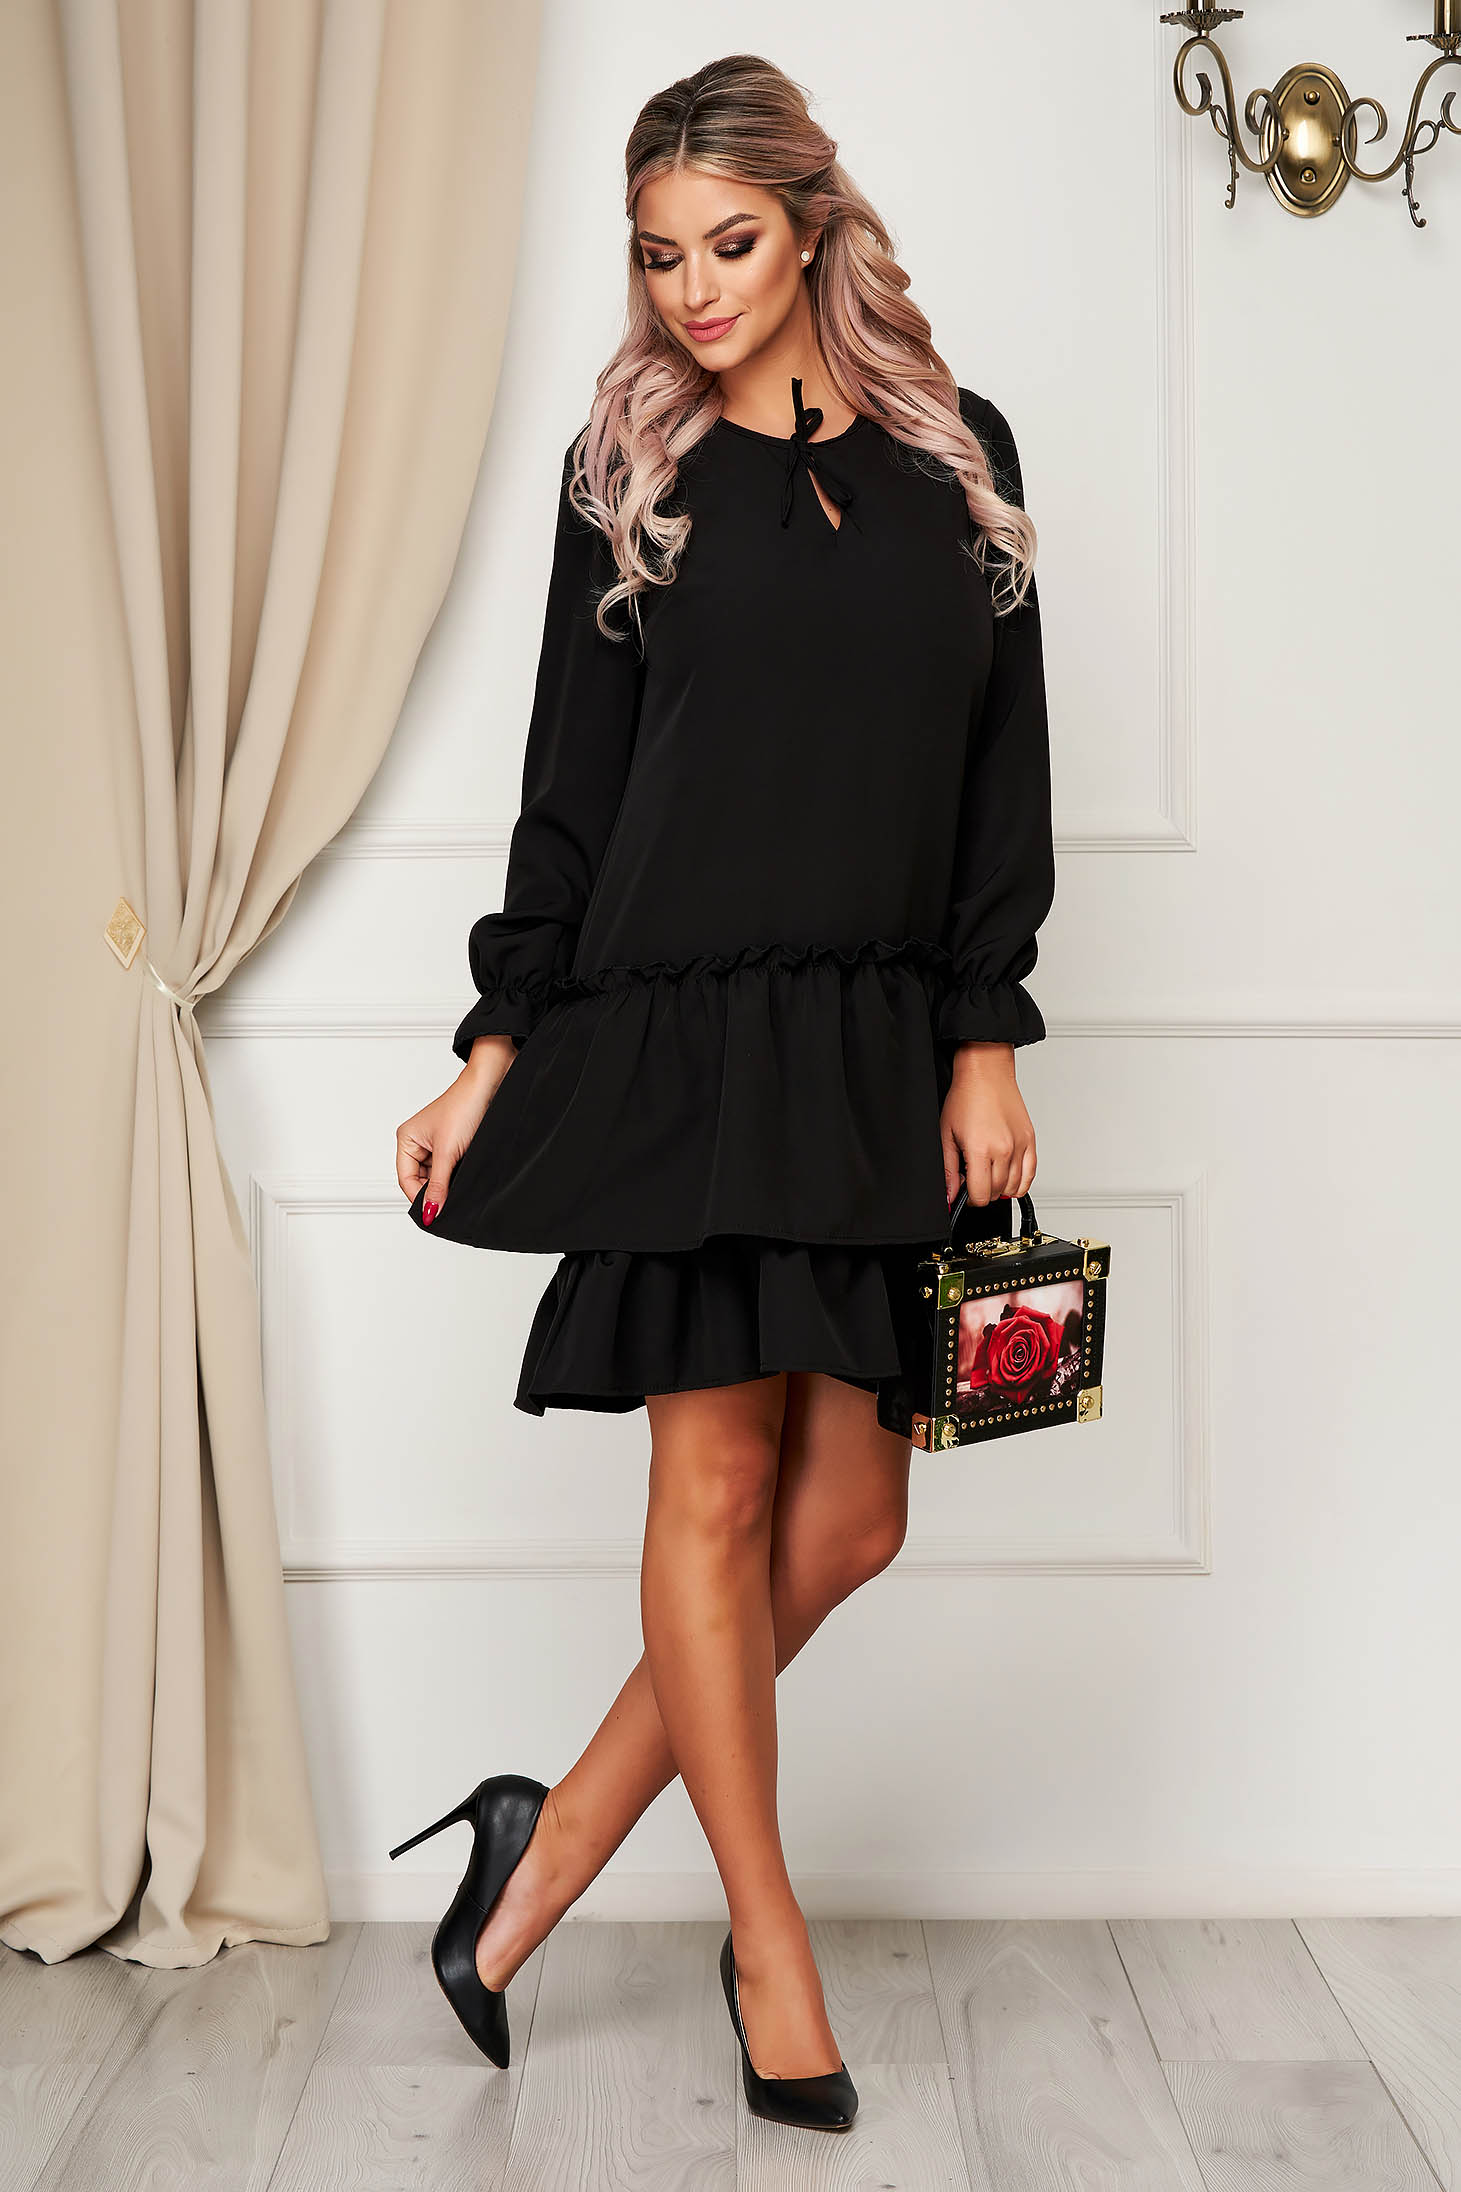 StarShinerS black dress daily flared slightly elastic fabric with ruffles at the buttom of the dress